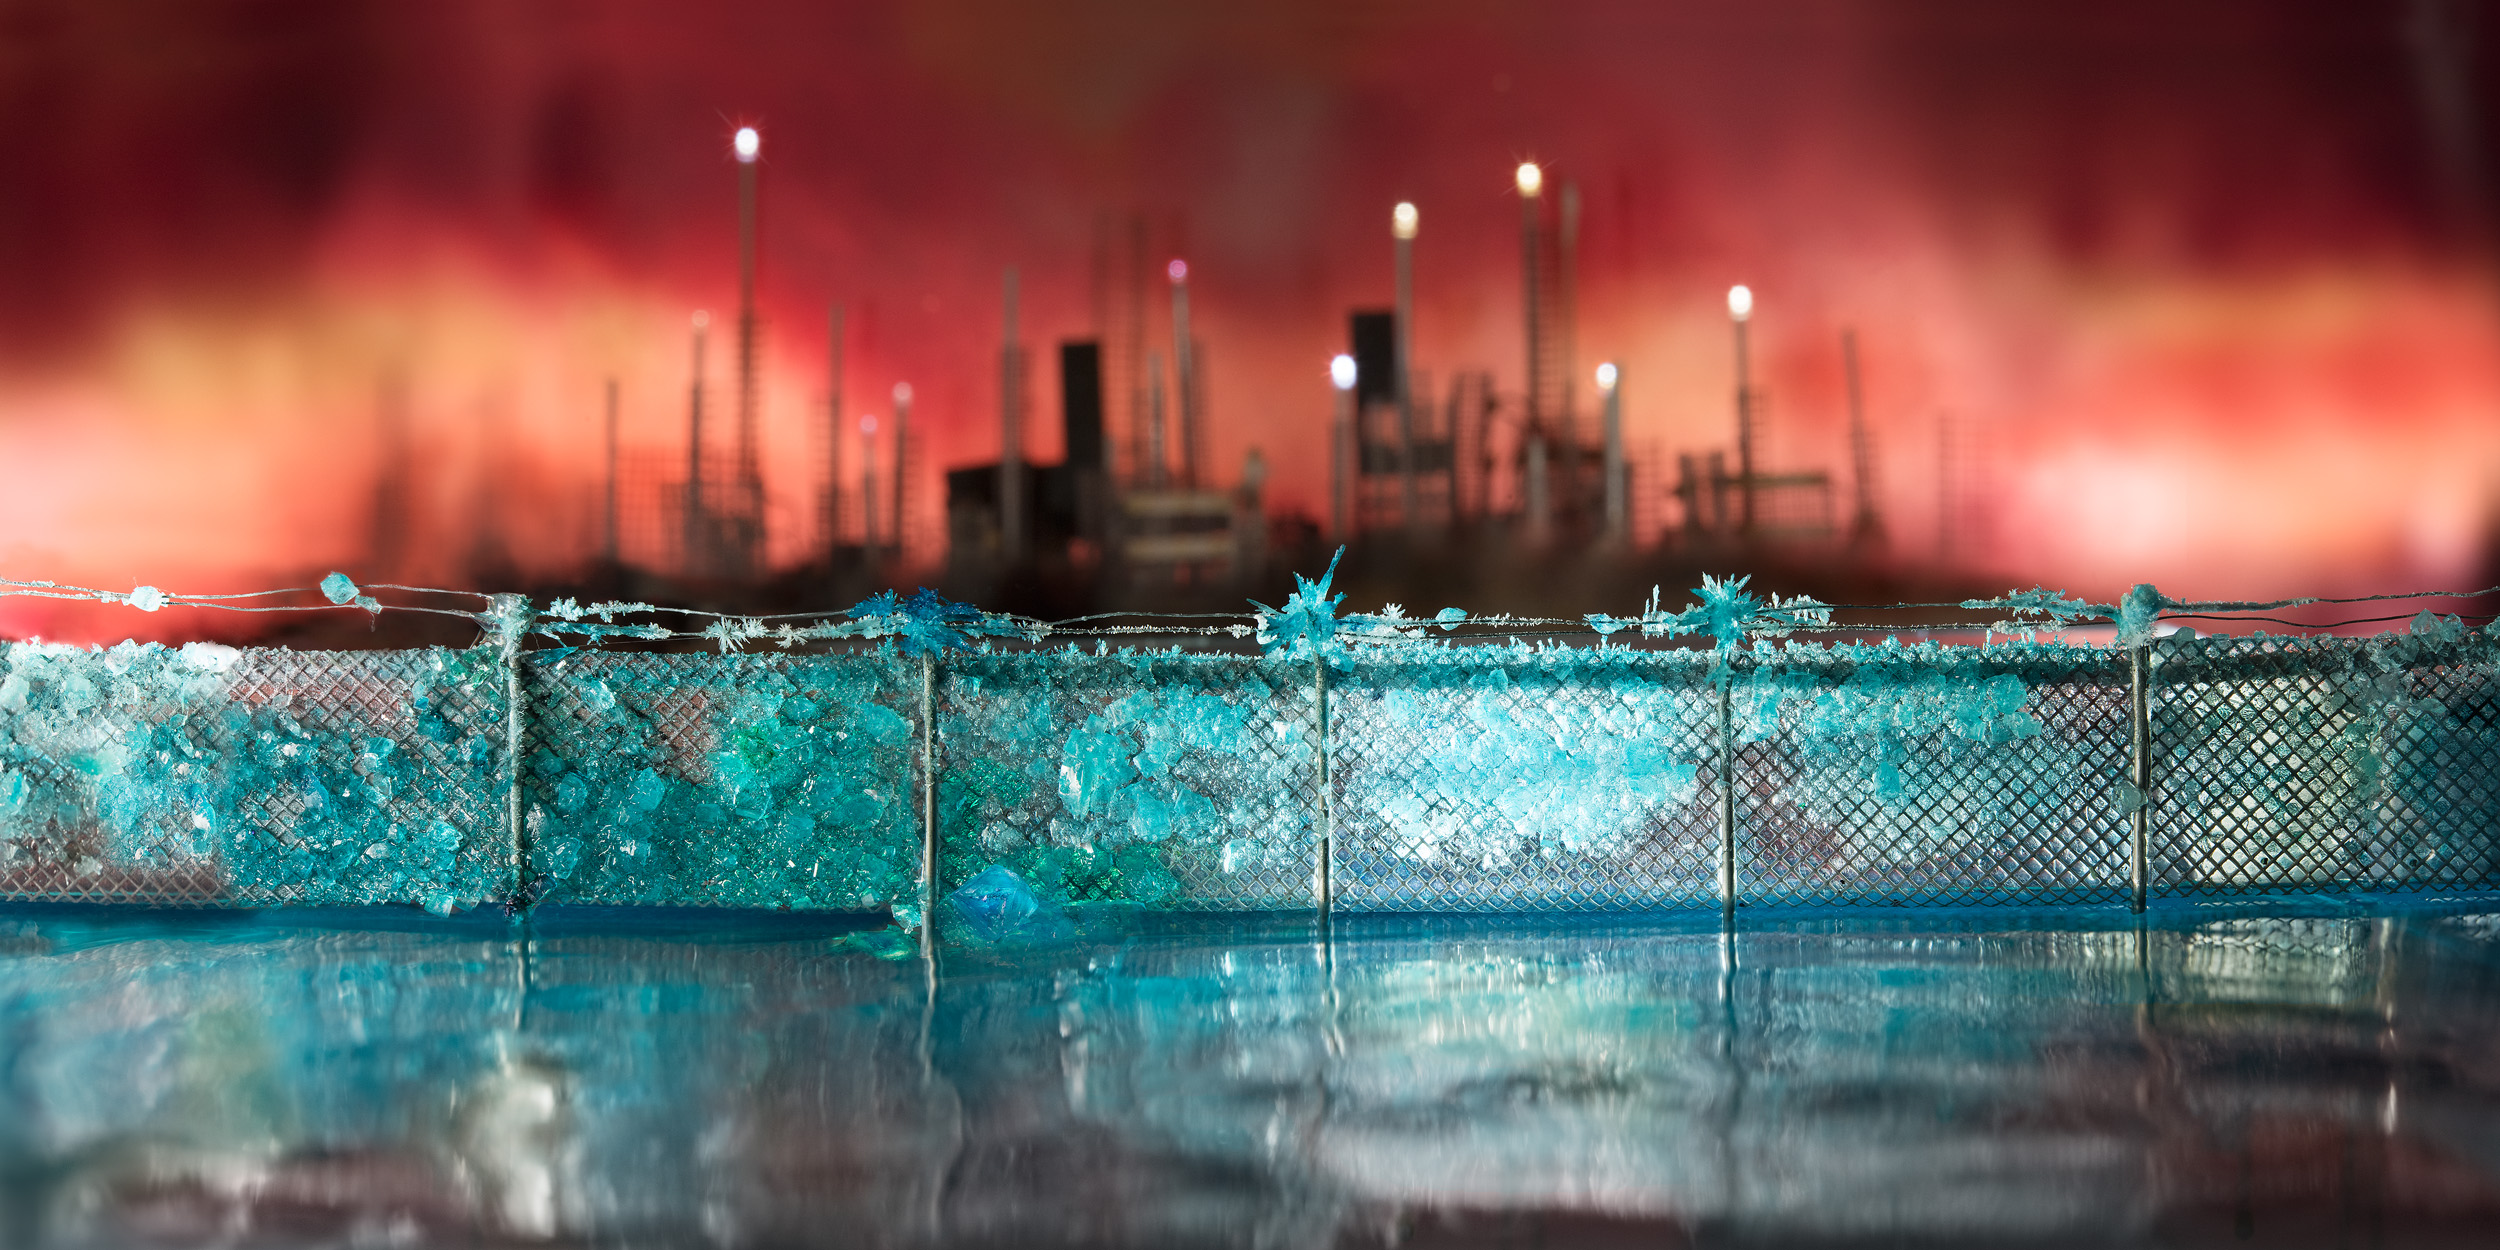 Print of bright blue crystals growing along a barbed wire fence, in front of a blurry, distant, industrial cityscape and a red-orange sky.